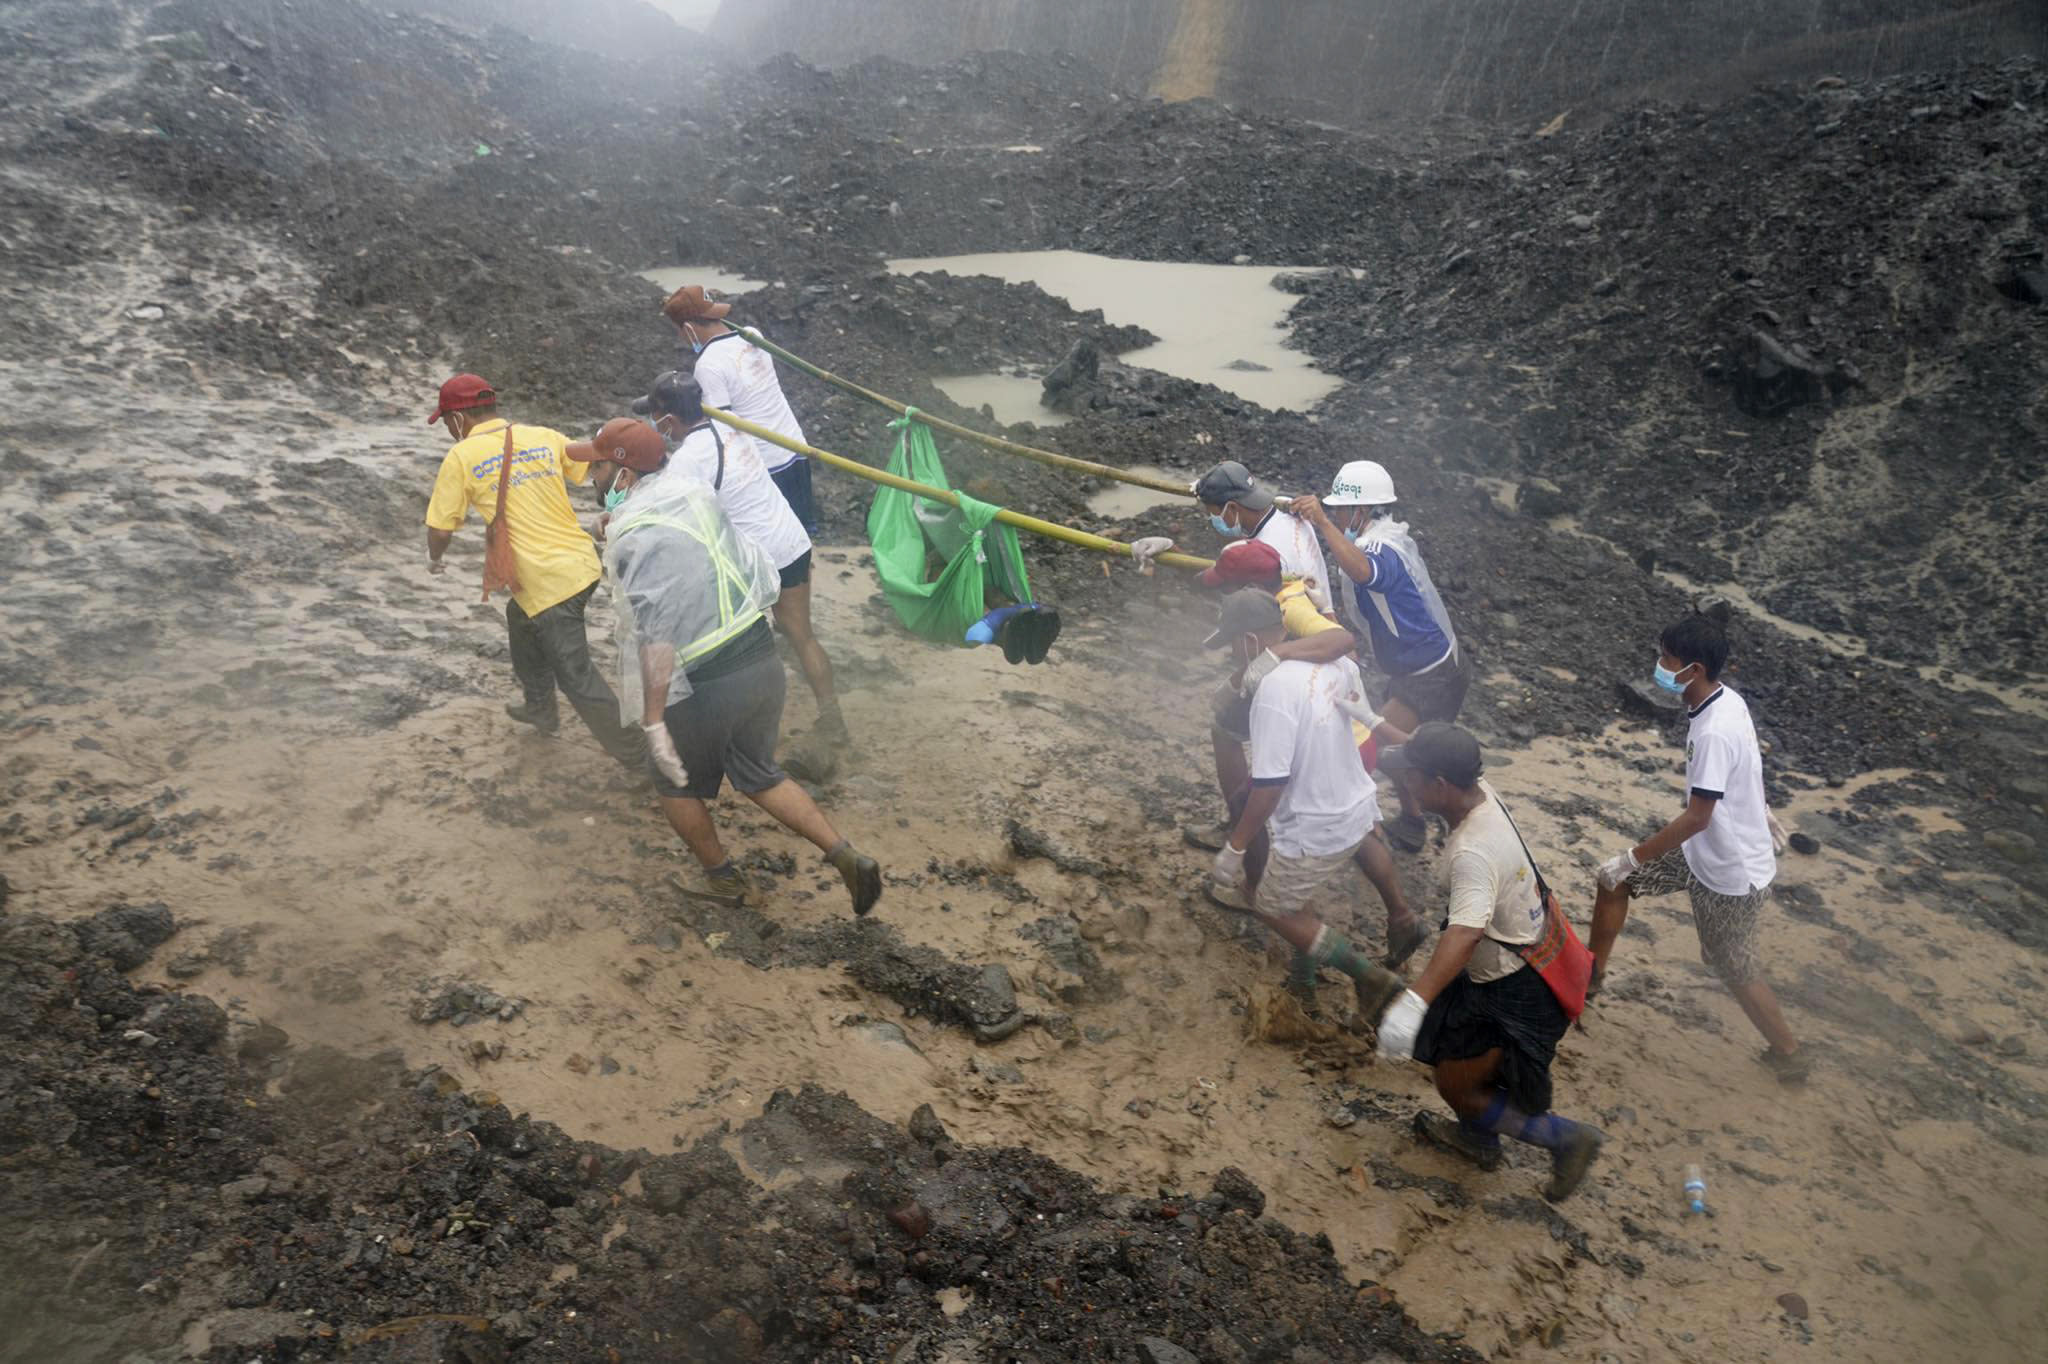 People use poles to carry a recovered body shrouded in green plastic Friday, July 3, 2020 in Hpakant, Kachin State, Myanmar. More than 100 people were killed Thursday in a landslide at a jade mine in northern Myanmar, the worst in a series of deadly accidents at such sites in recent years. (AP Photo/Zaw Moe Htet)